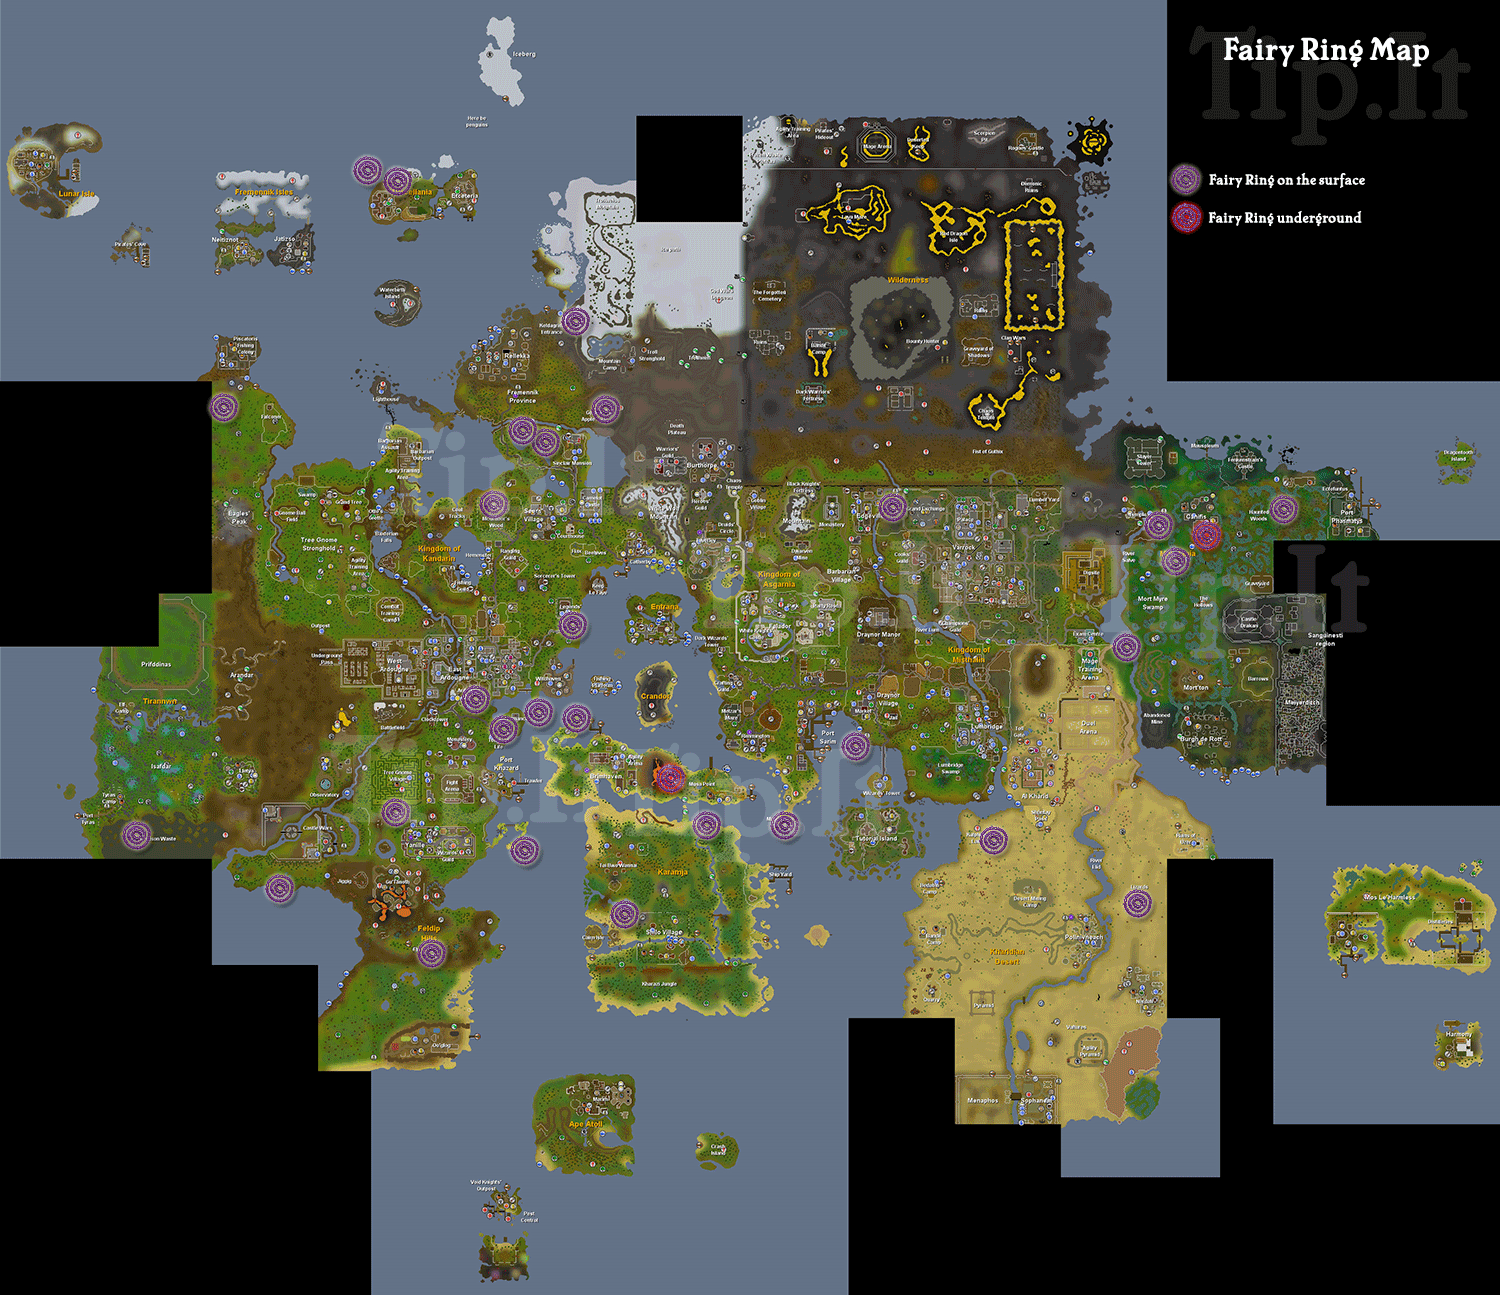 Using fairy rings runescape map